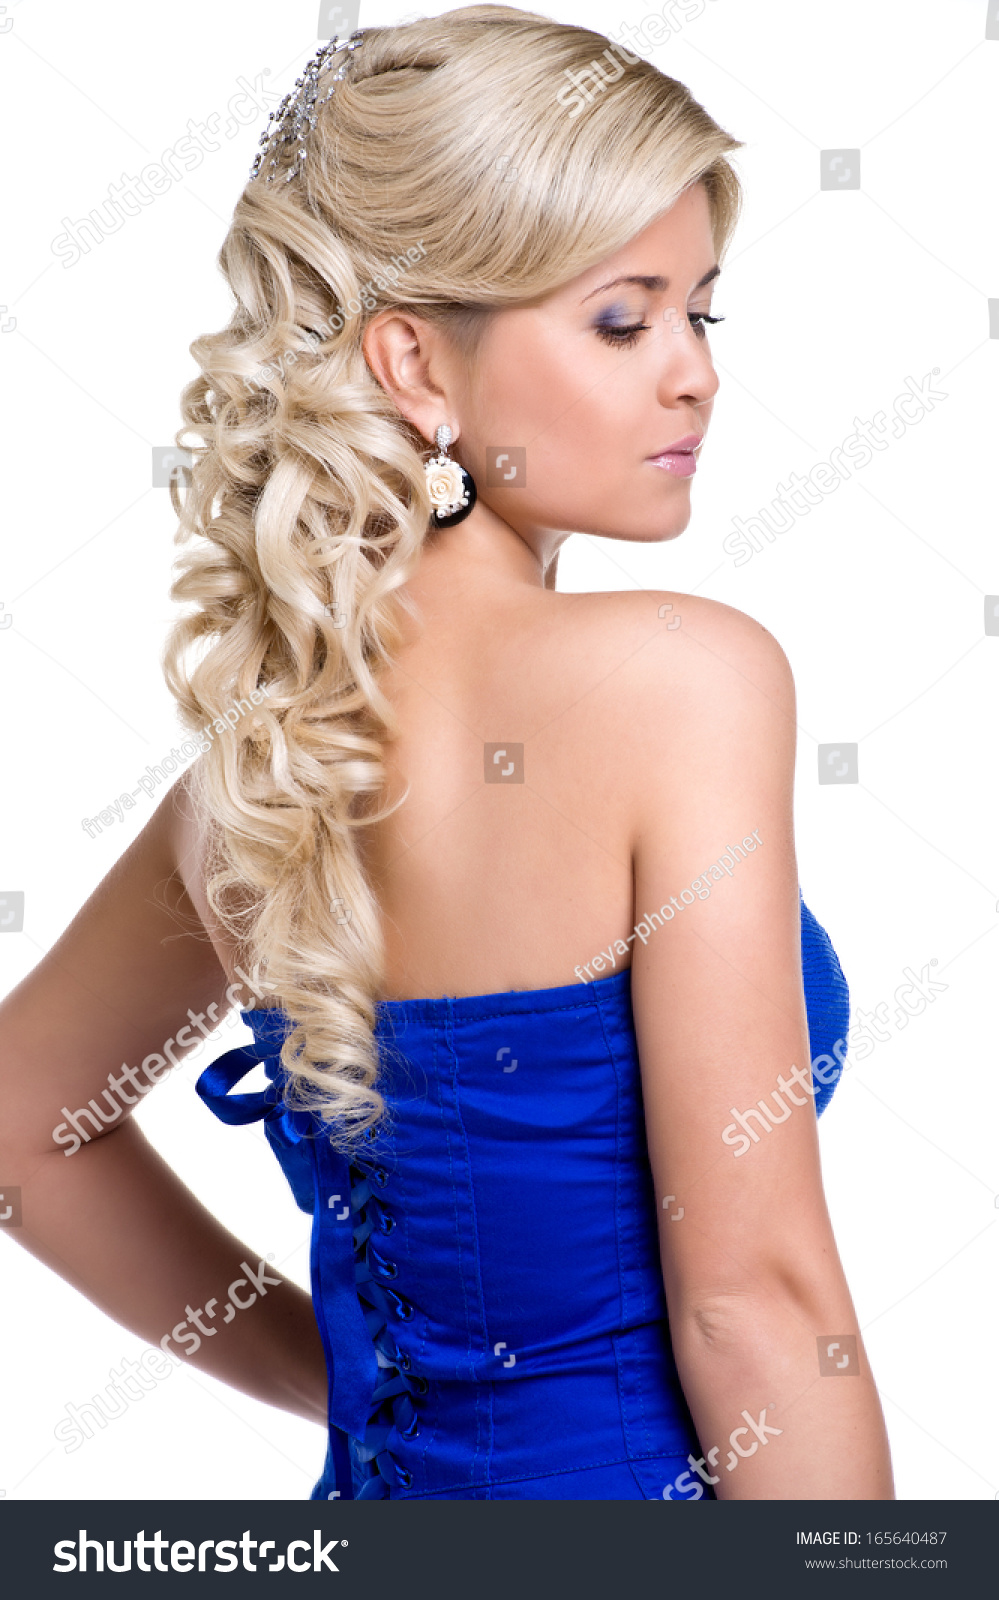 Beauty Wedding Hairstyle Bride Woman Blue Stock Photo Edit Now